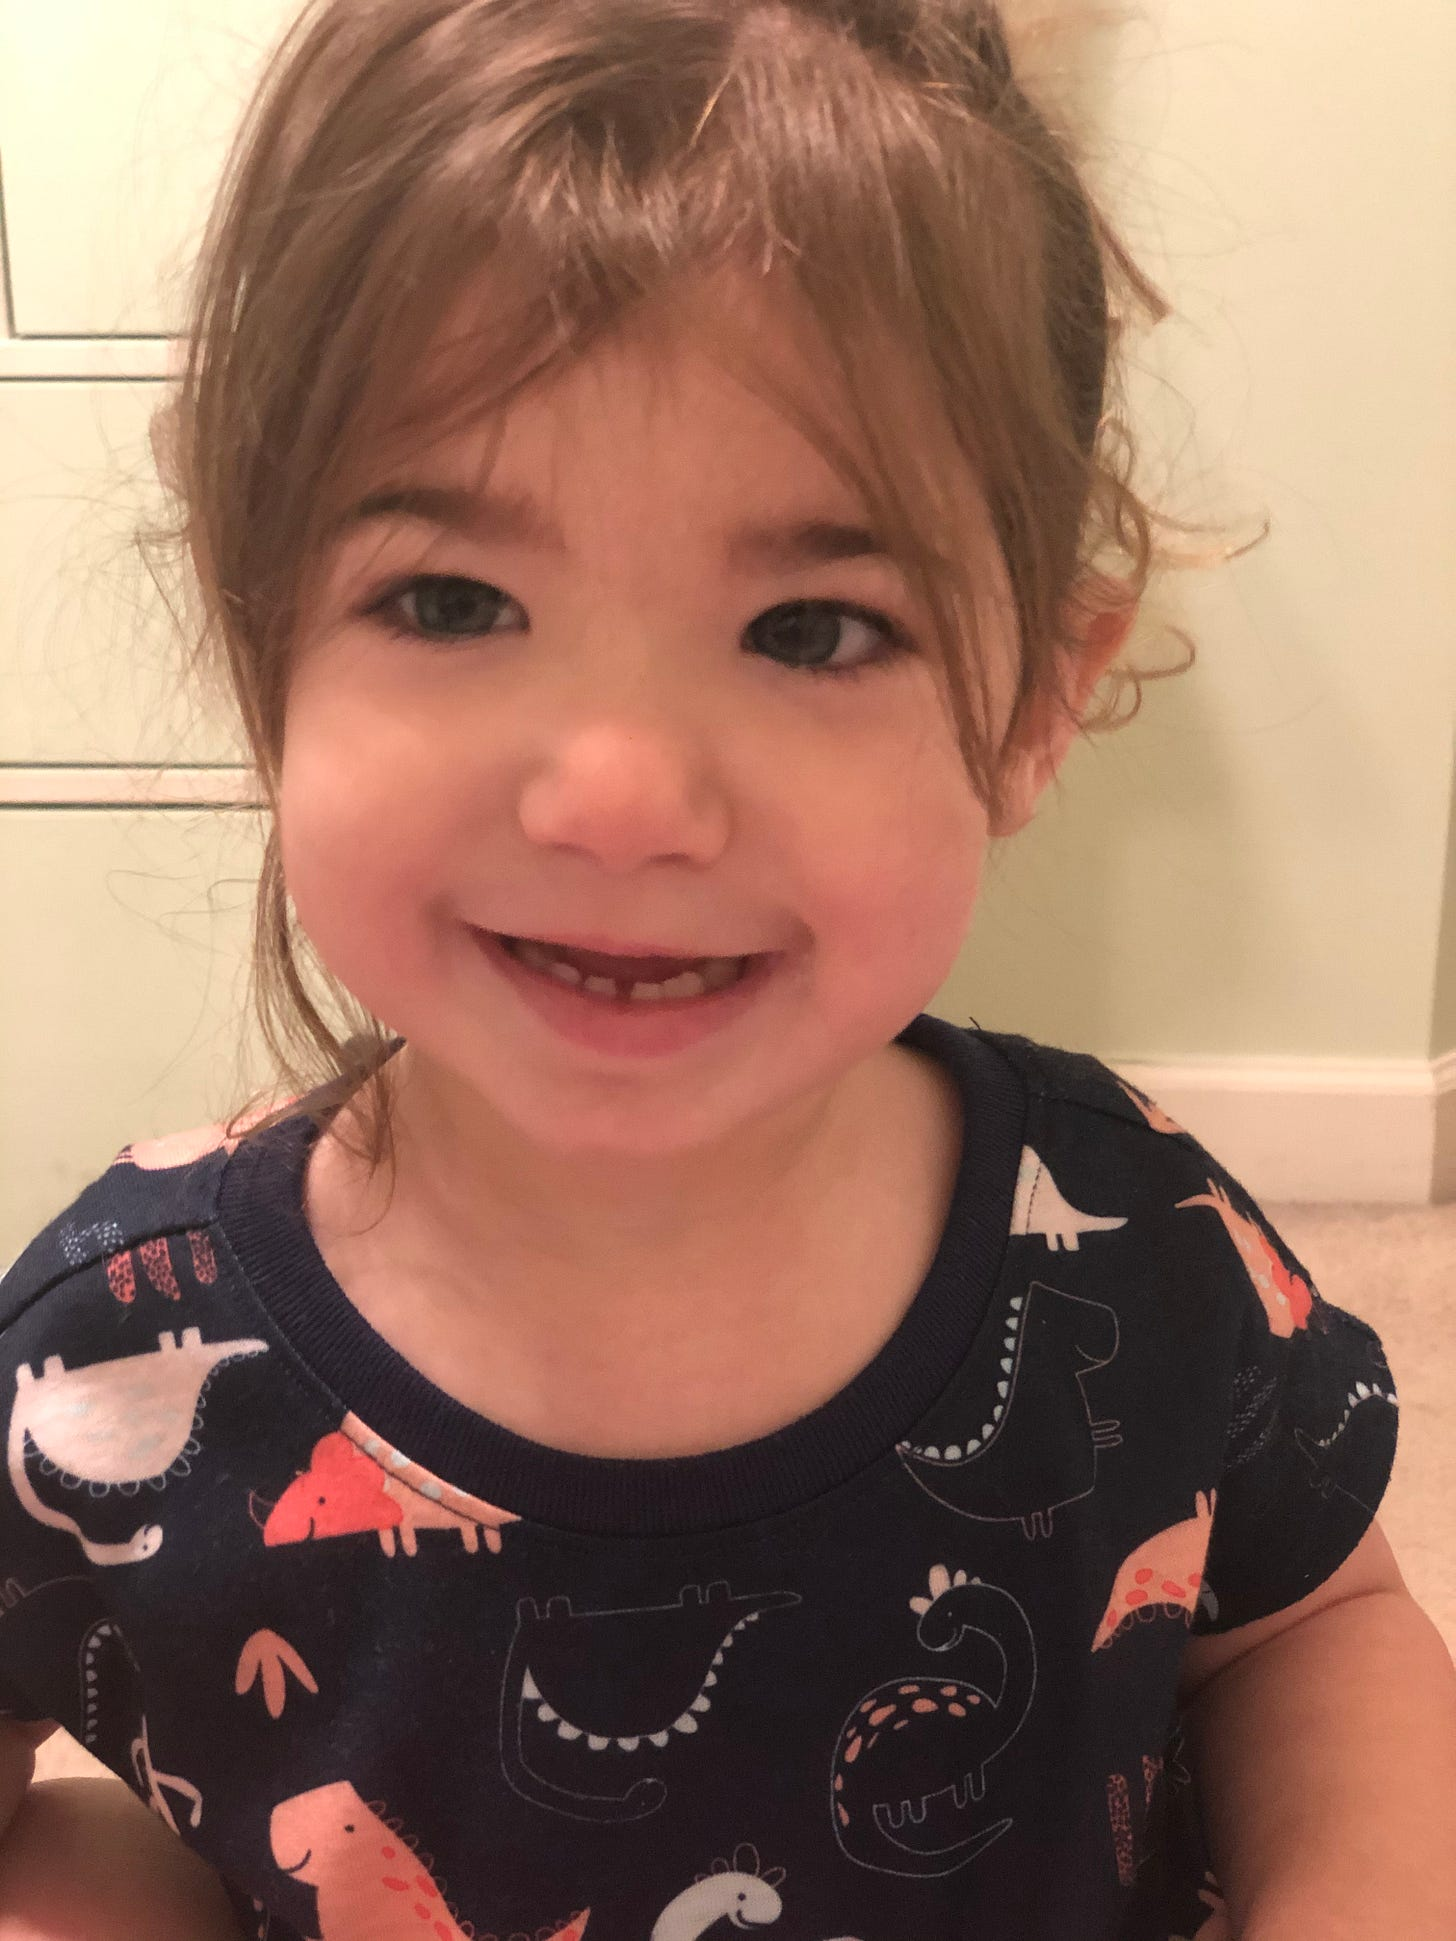 Photo of Lila smiling and showing her fused tooth.